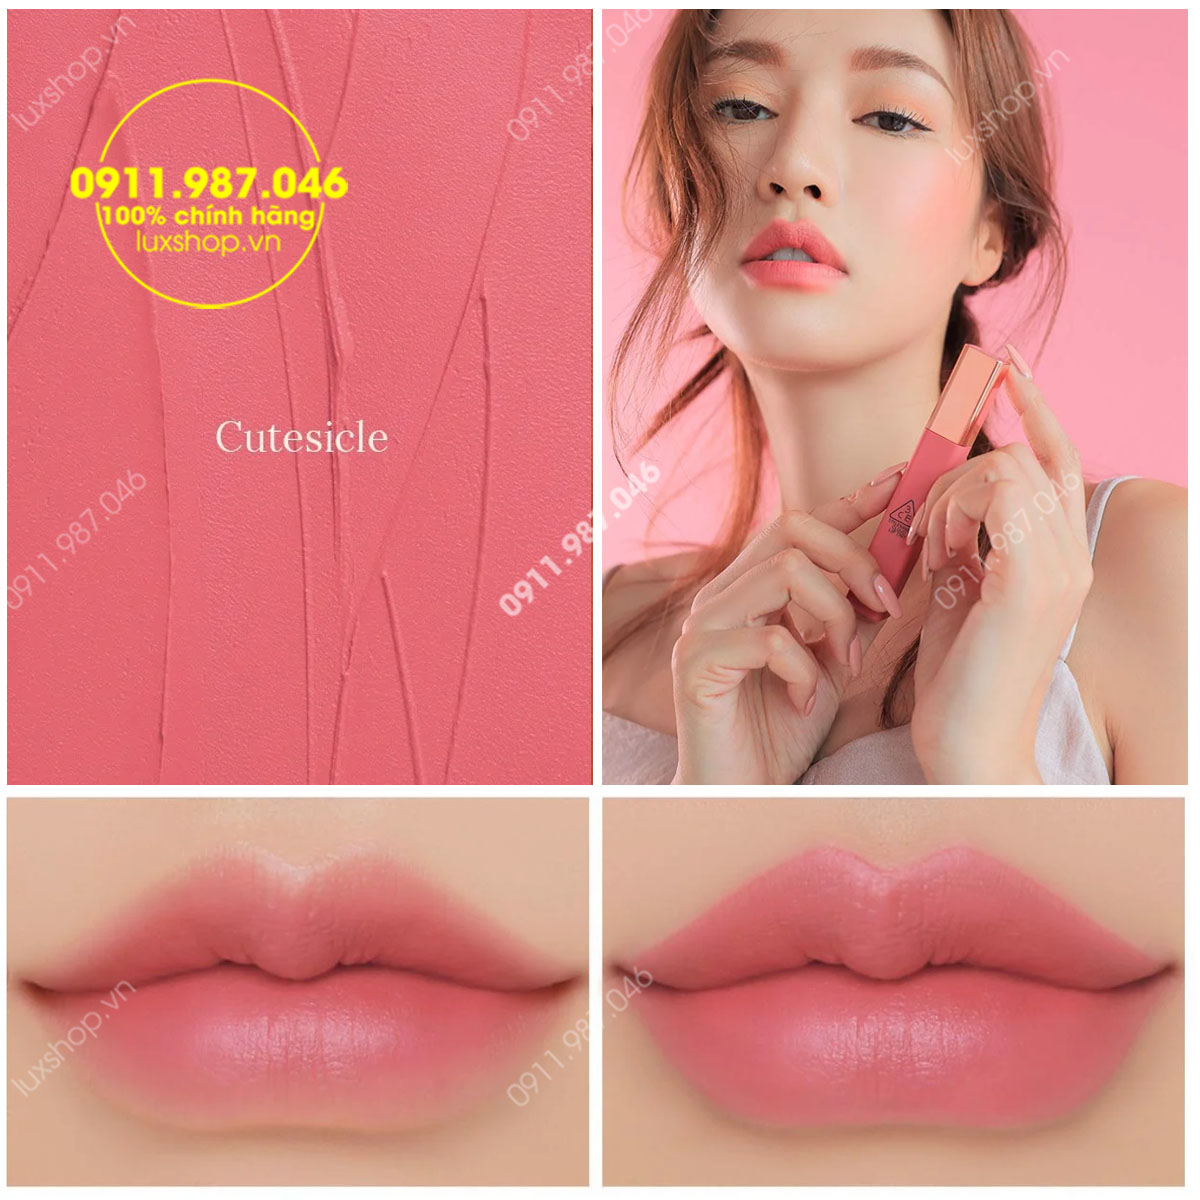 Son 3CE Kem Cloud Lip Tint Màu Cutesicle